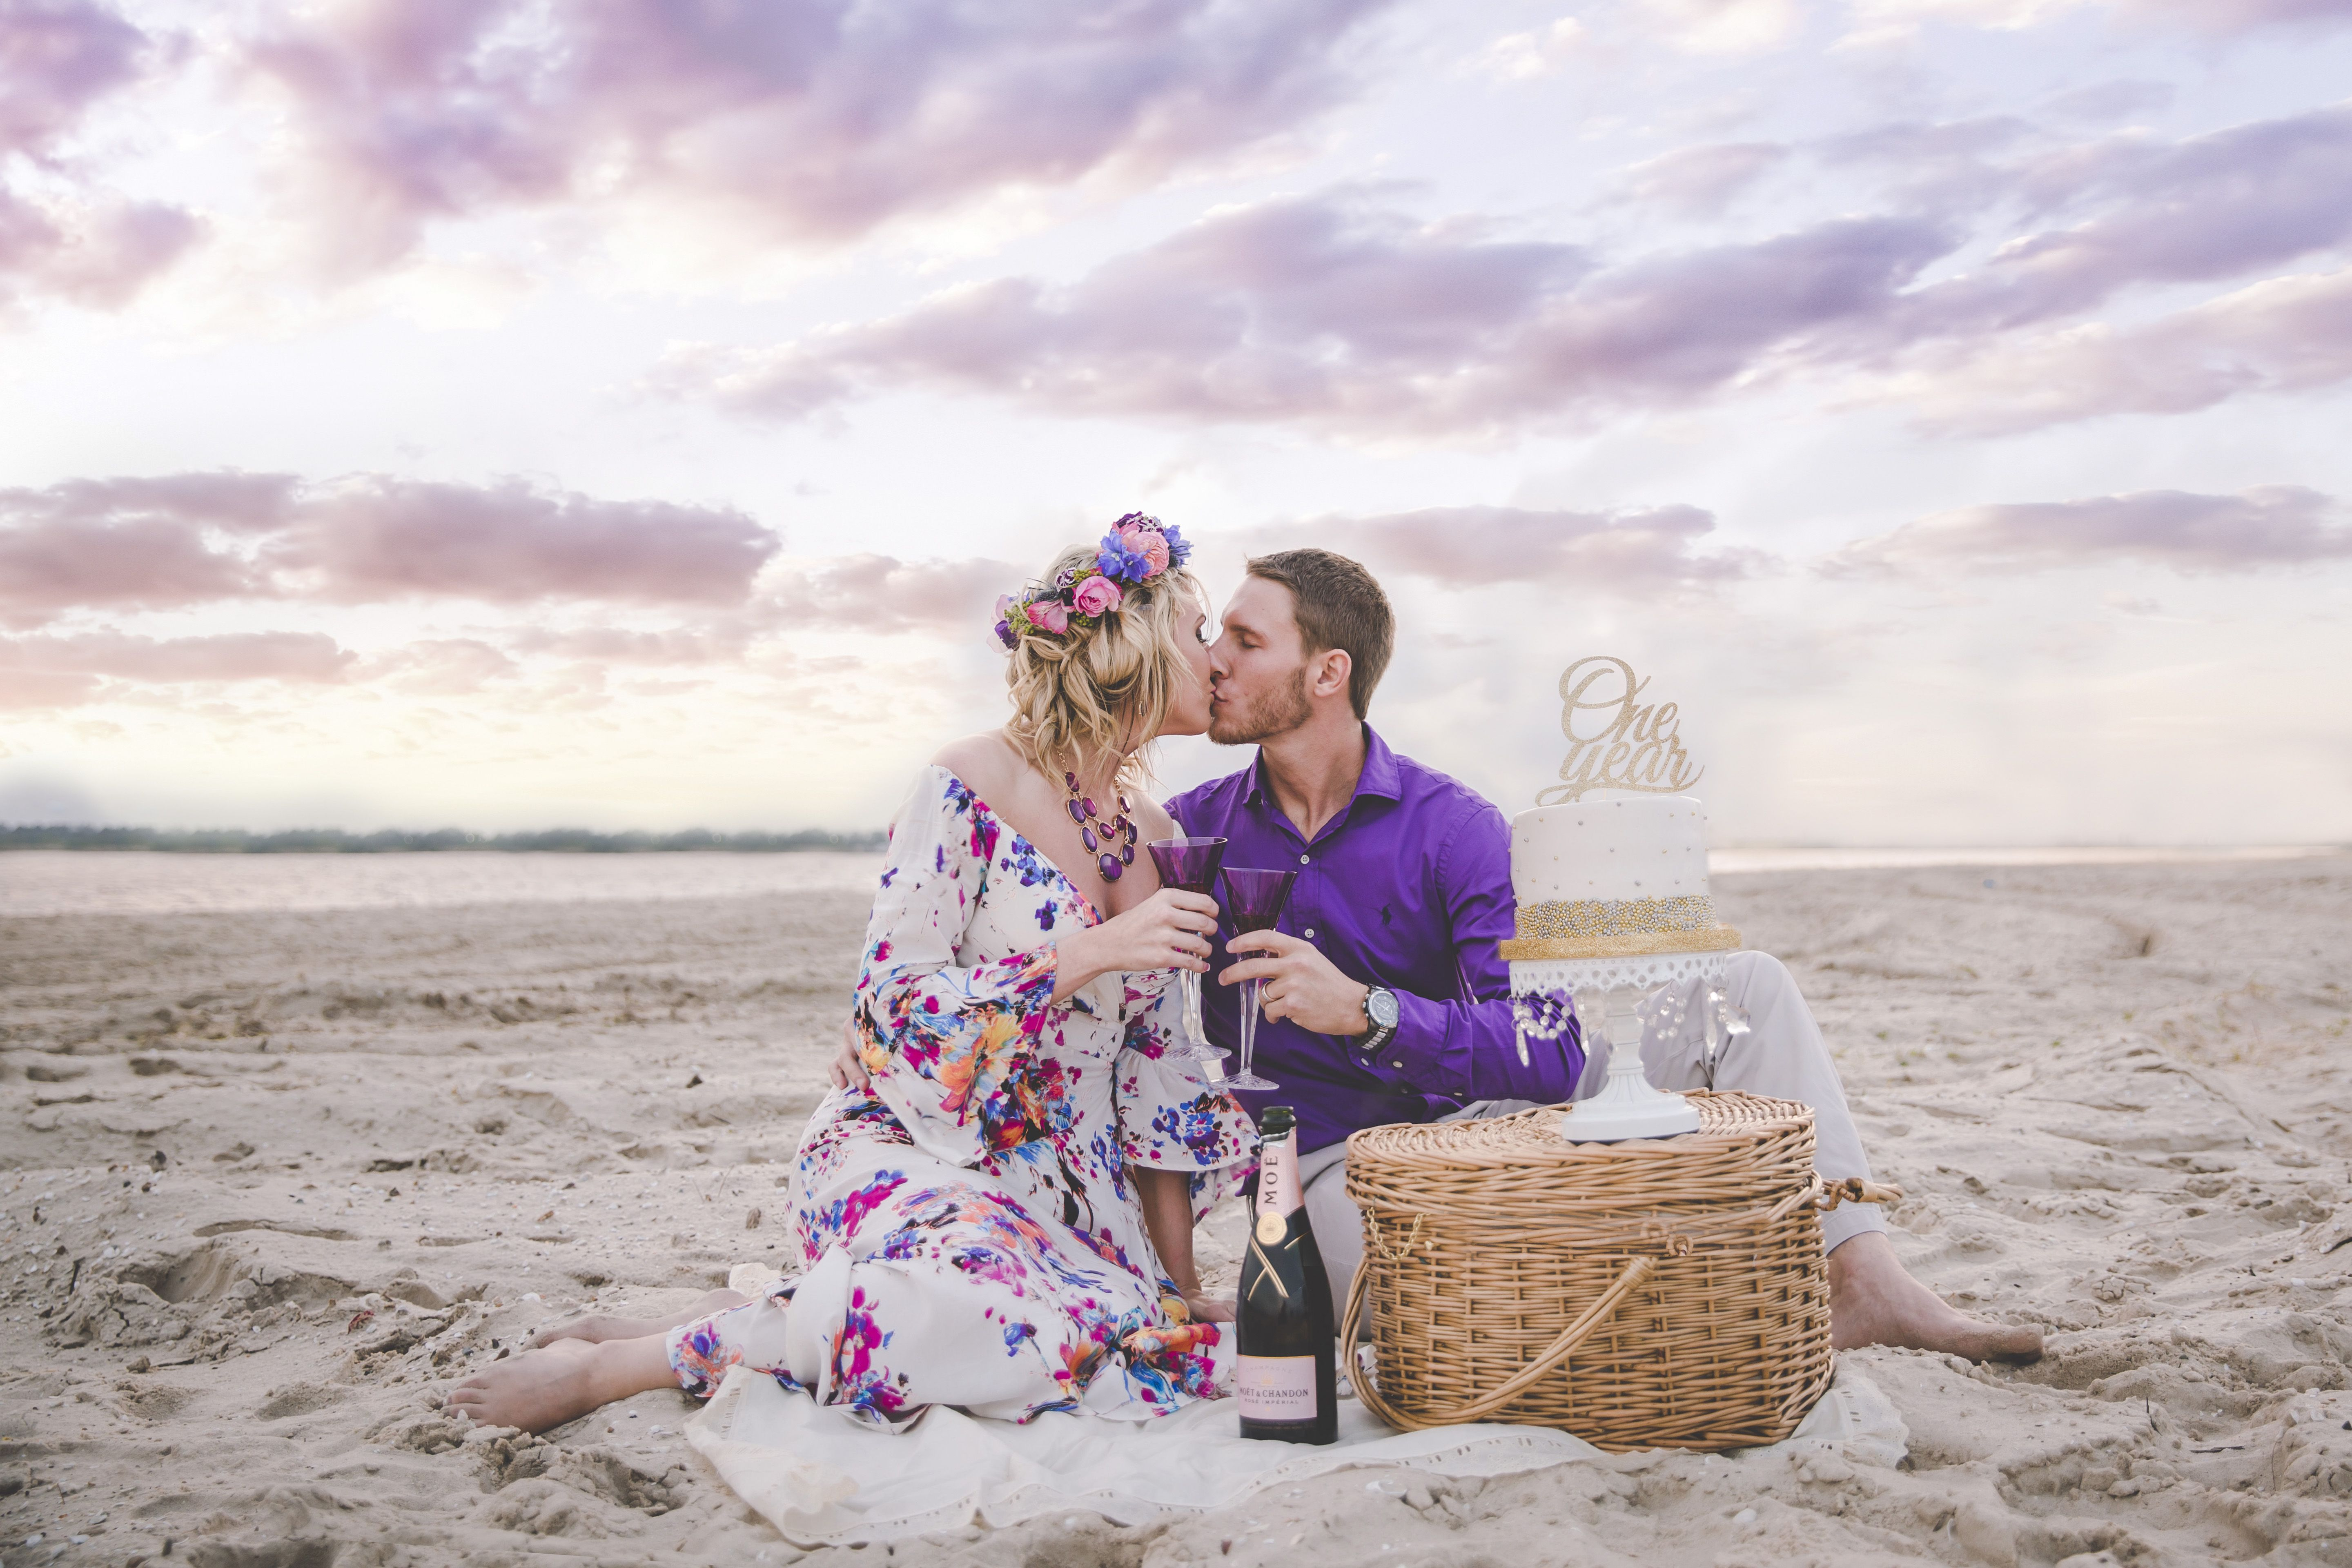 One Year Anniversary Pictures Beach Pictures Flower Crown